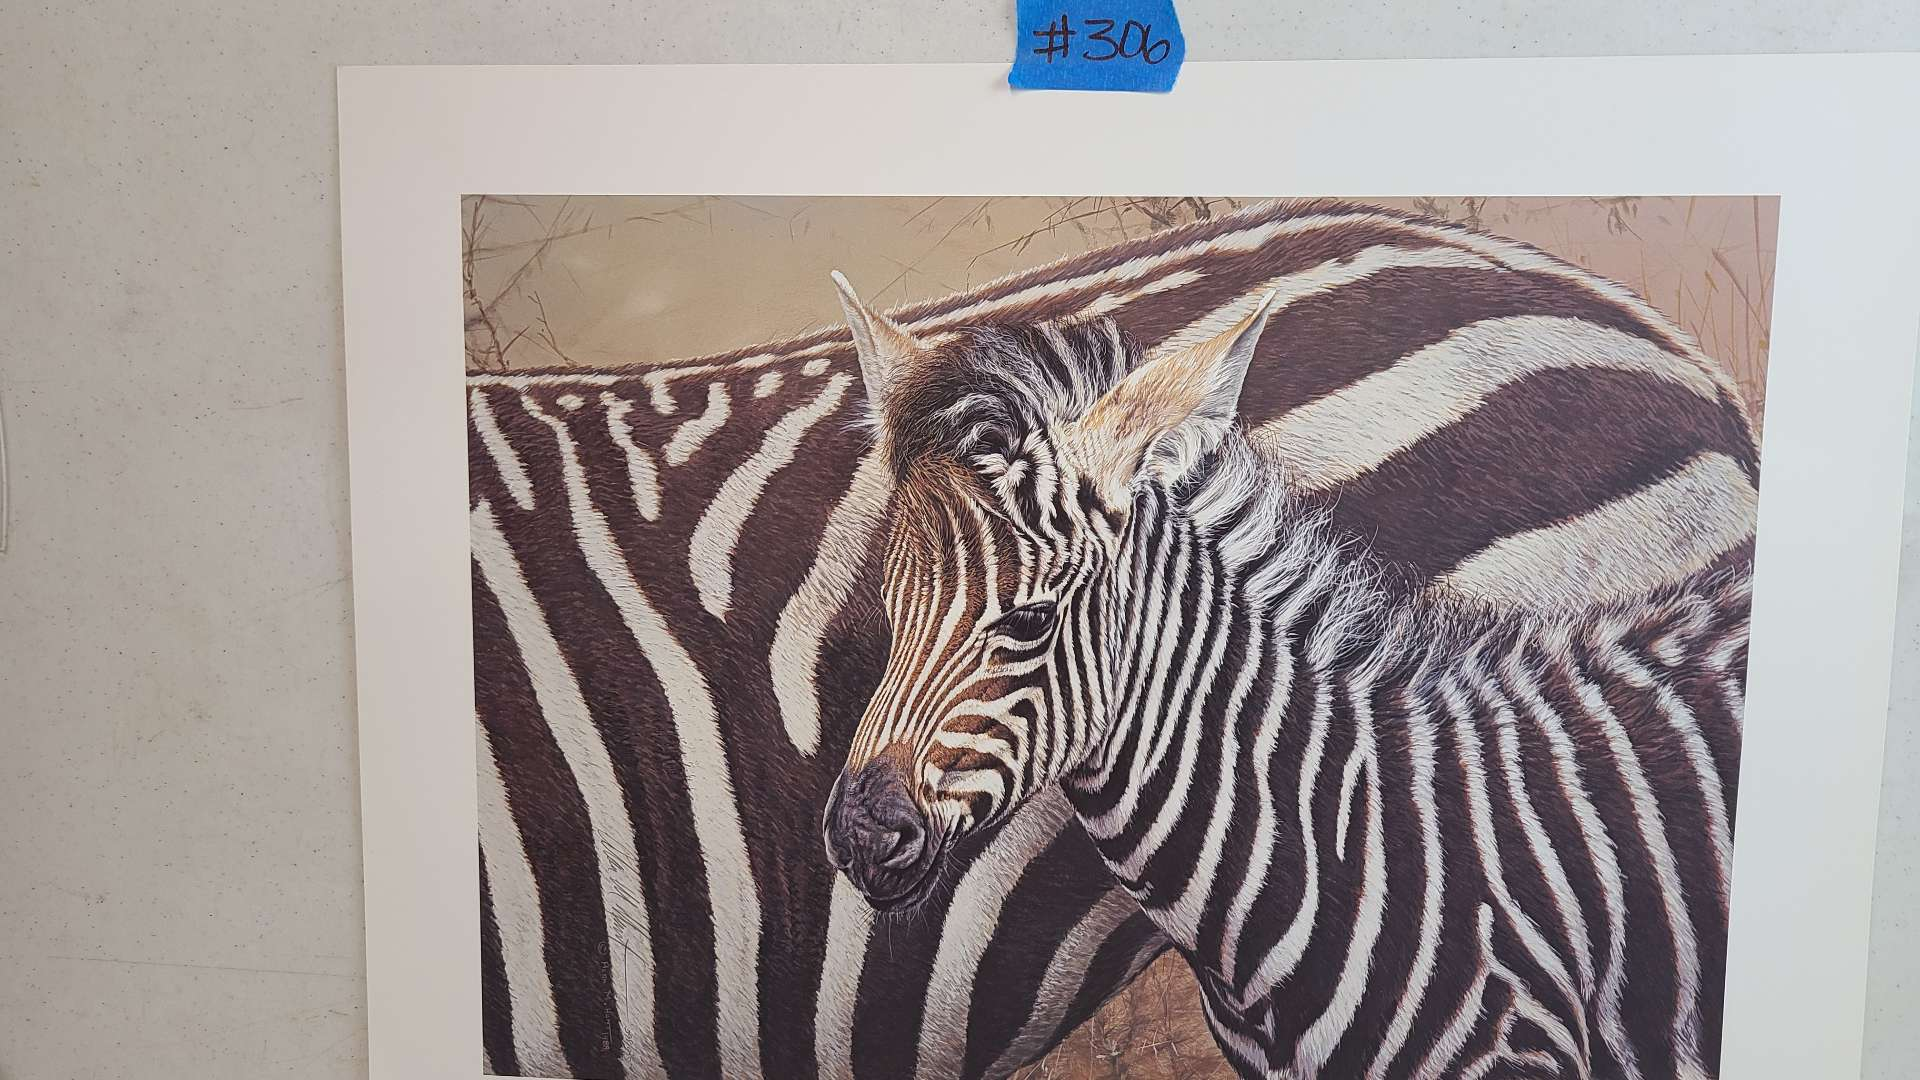 """Lot # 306 """"Serengeti Child"""" By Alan Hunt Limited Edition Signed & Numbered Lithograph"""